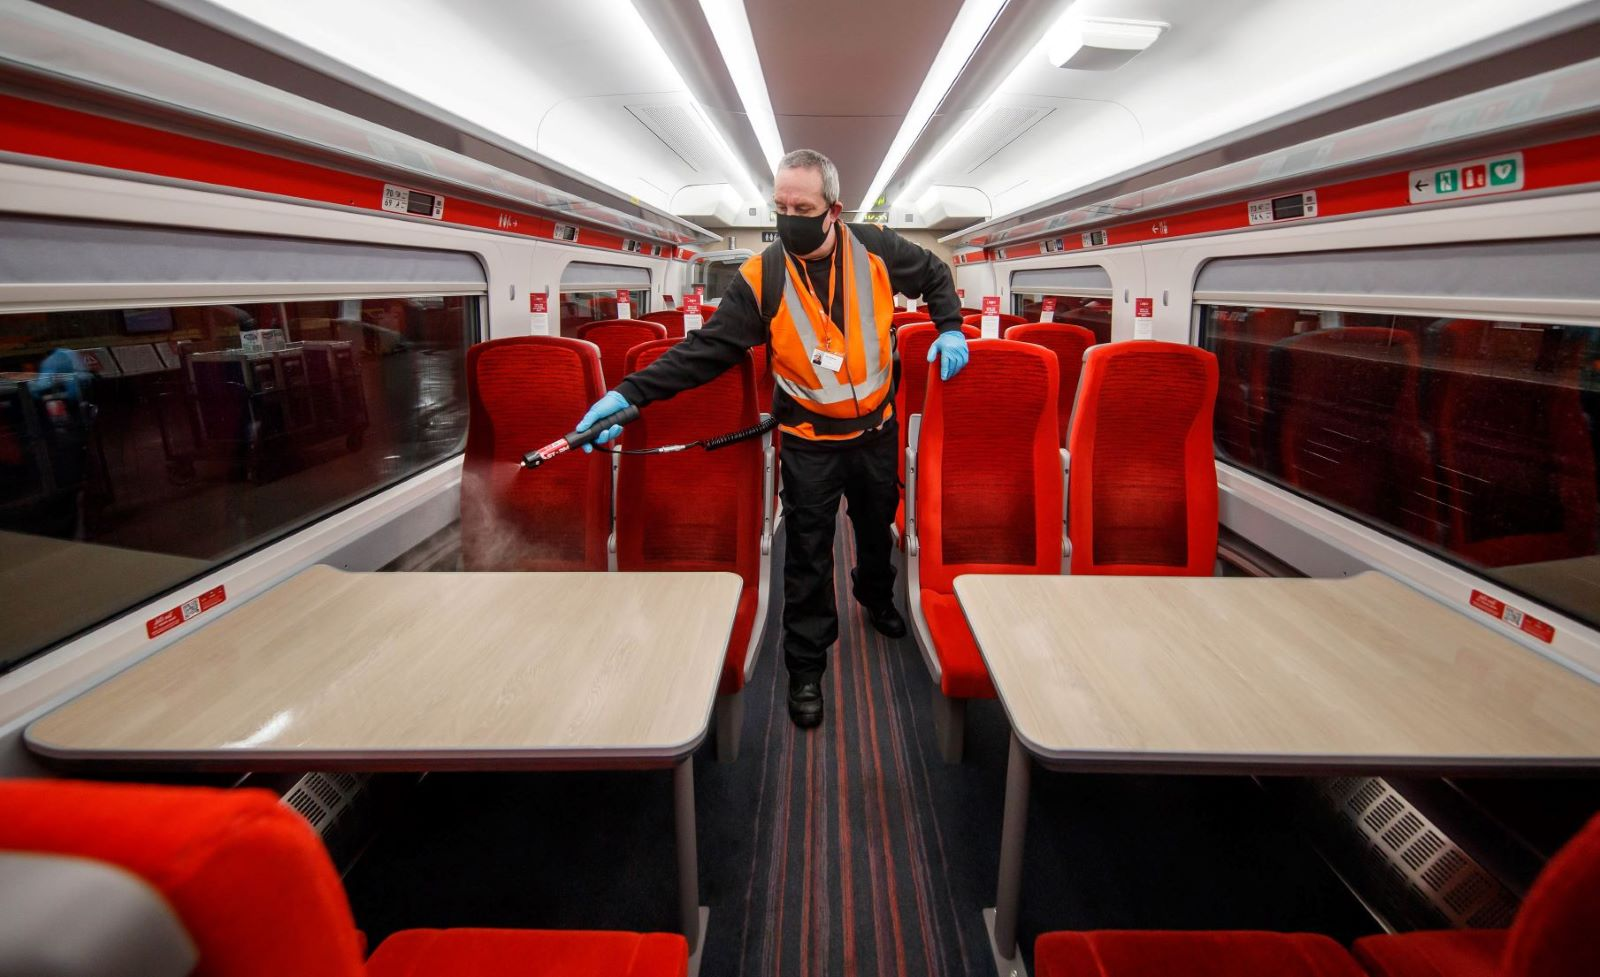 Cleaners Clock Up Half A Million Hours Working Day-And-Night To Ensure LNER Customers Can Travel With Confidence